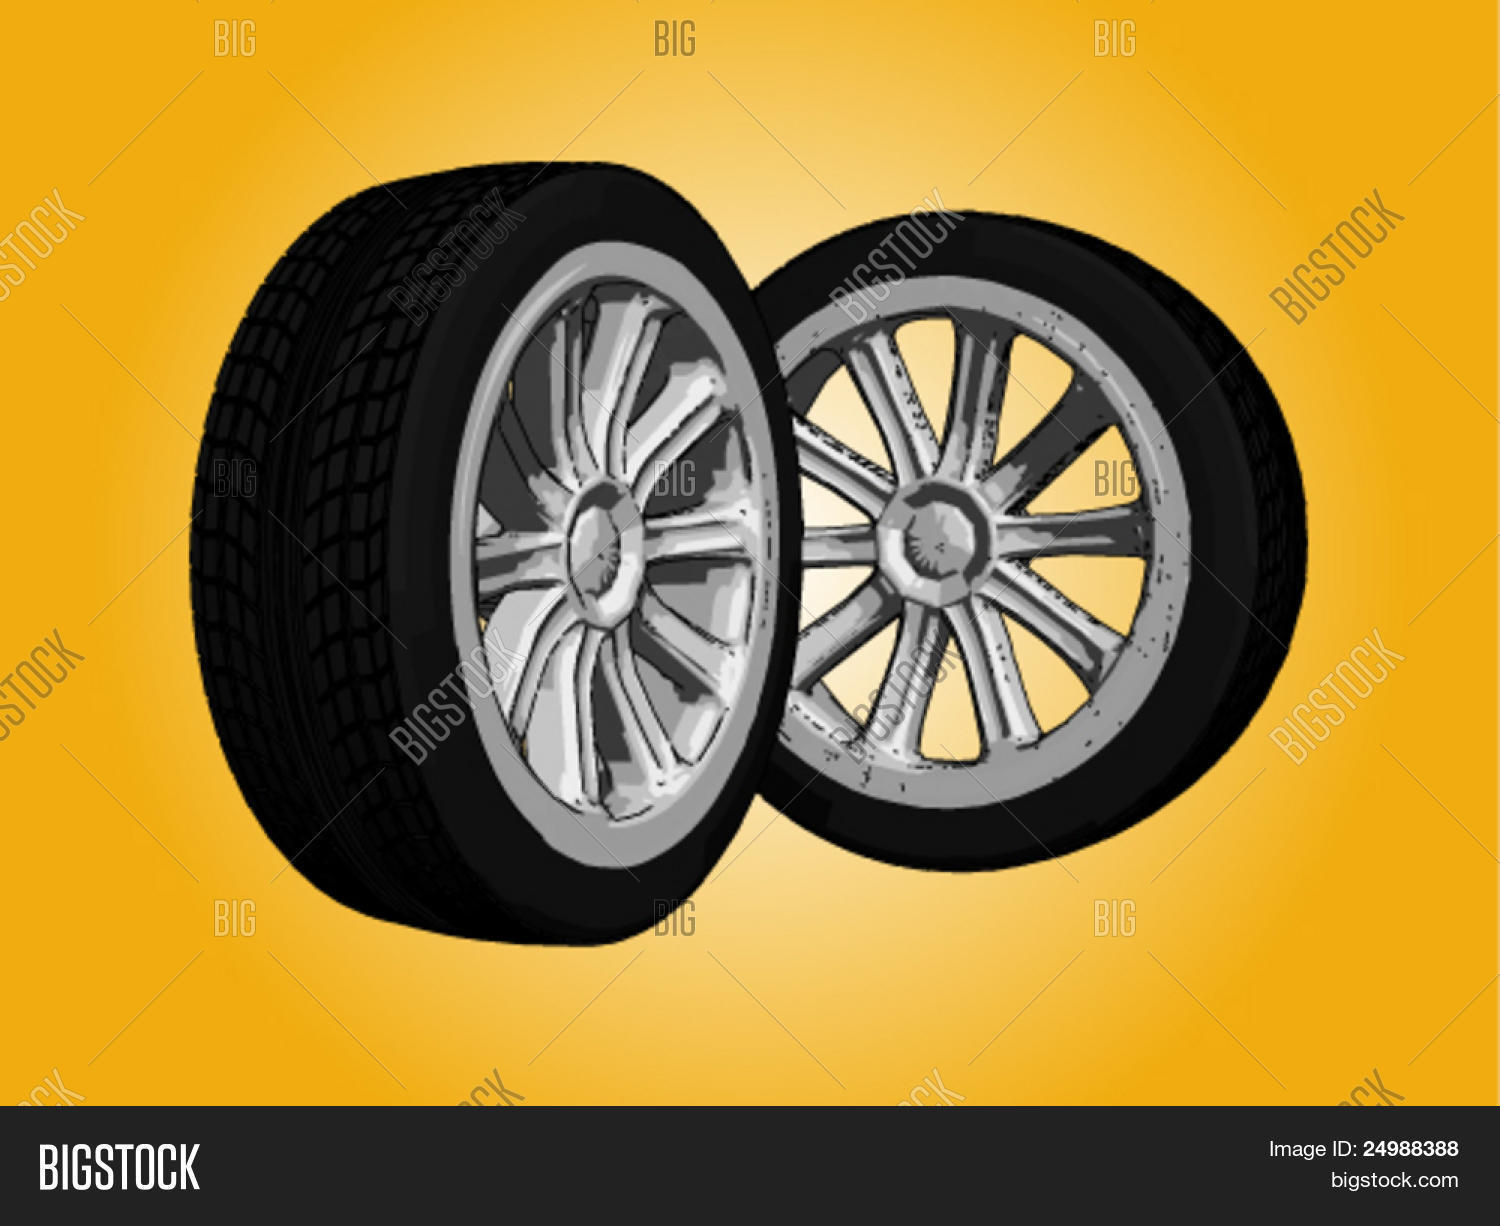 aluminum,auto,automobile,automotive,black,car,chrome,drive,isolated,metal,new,race,rims,road,round,rubber,shiny,silver,speed,sport,tire,traffic,transport,tyre,vector,vehicle,wheels,white